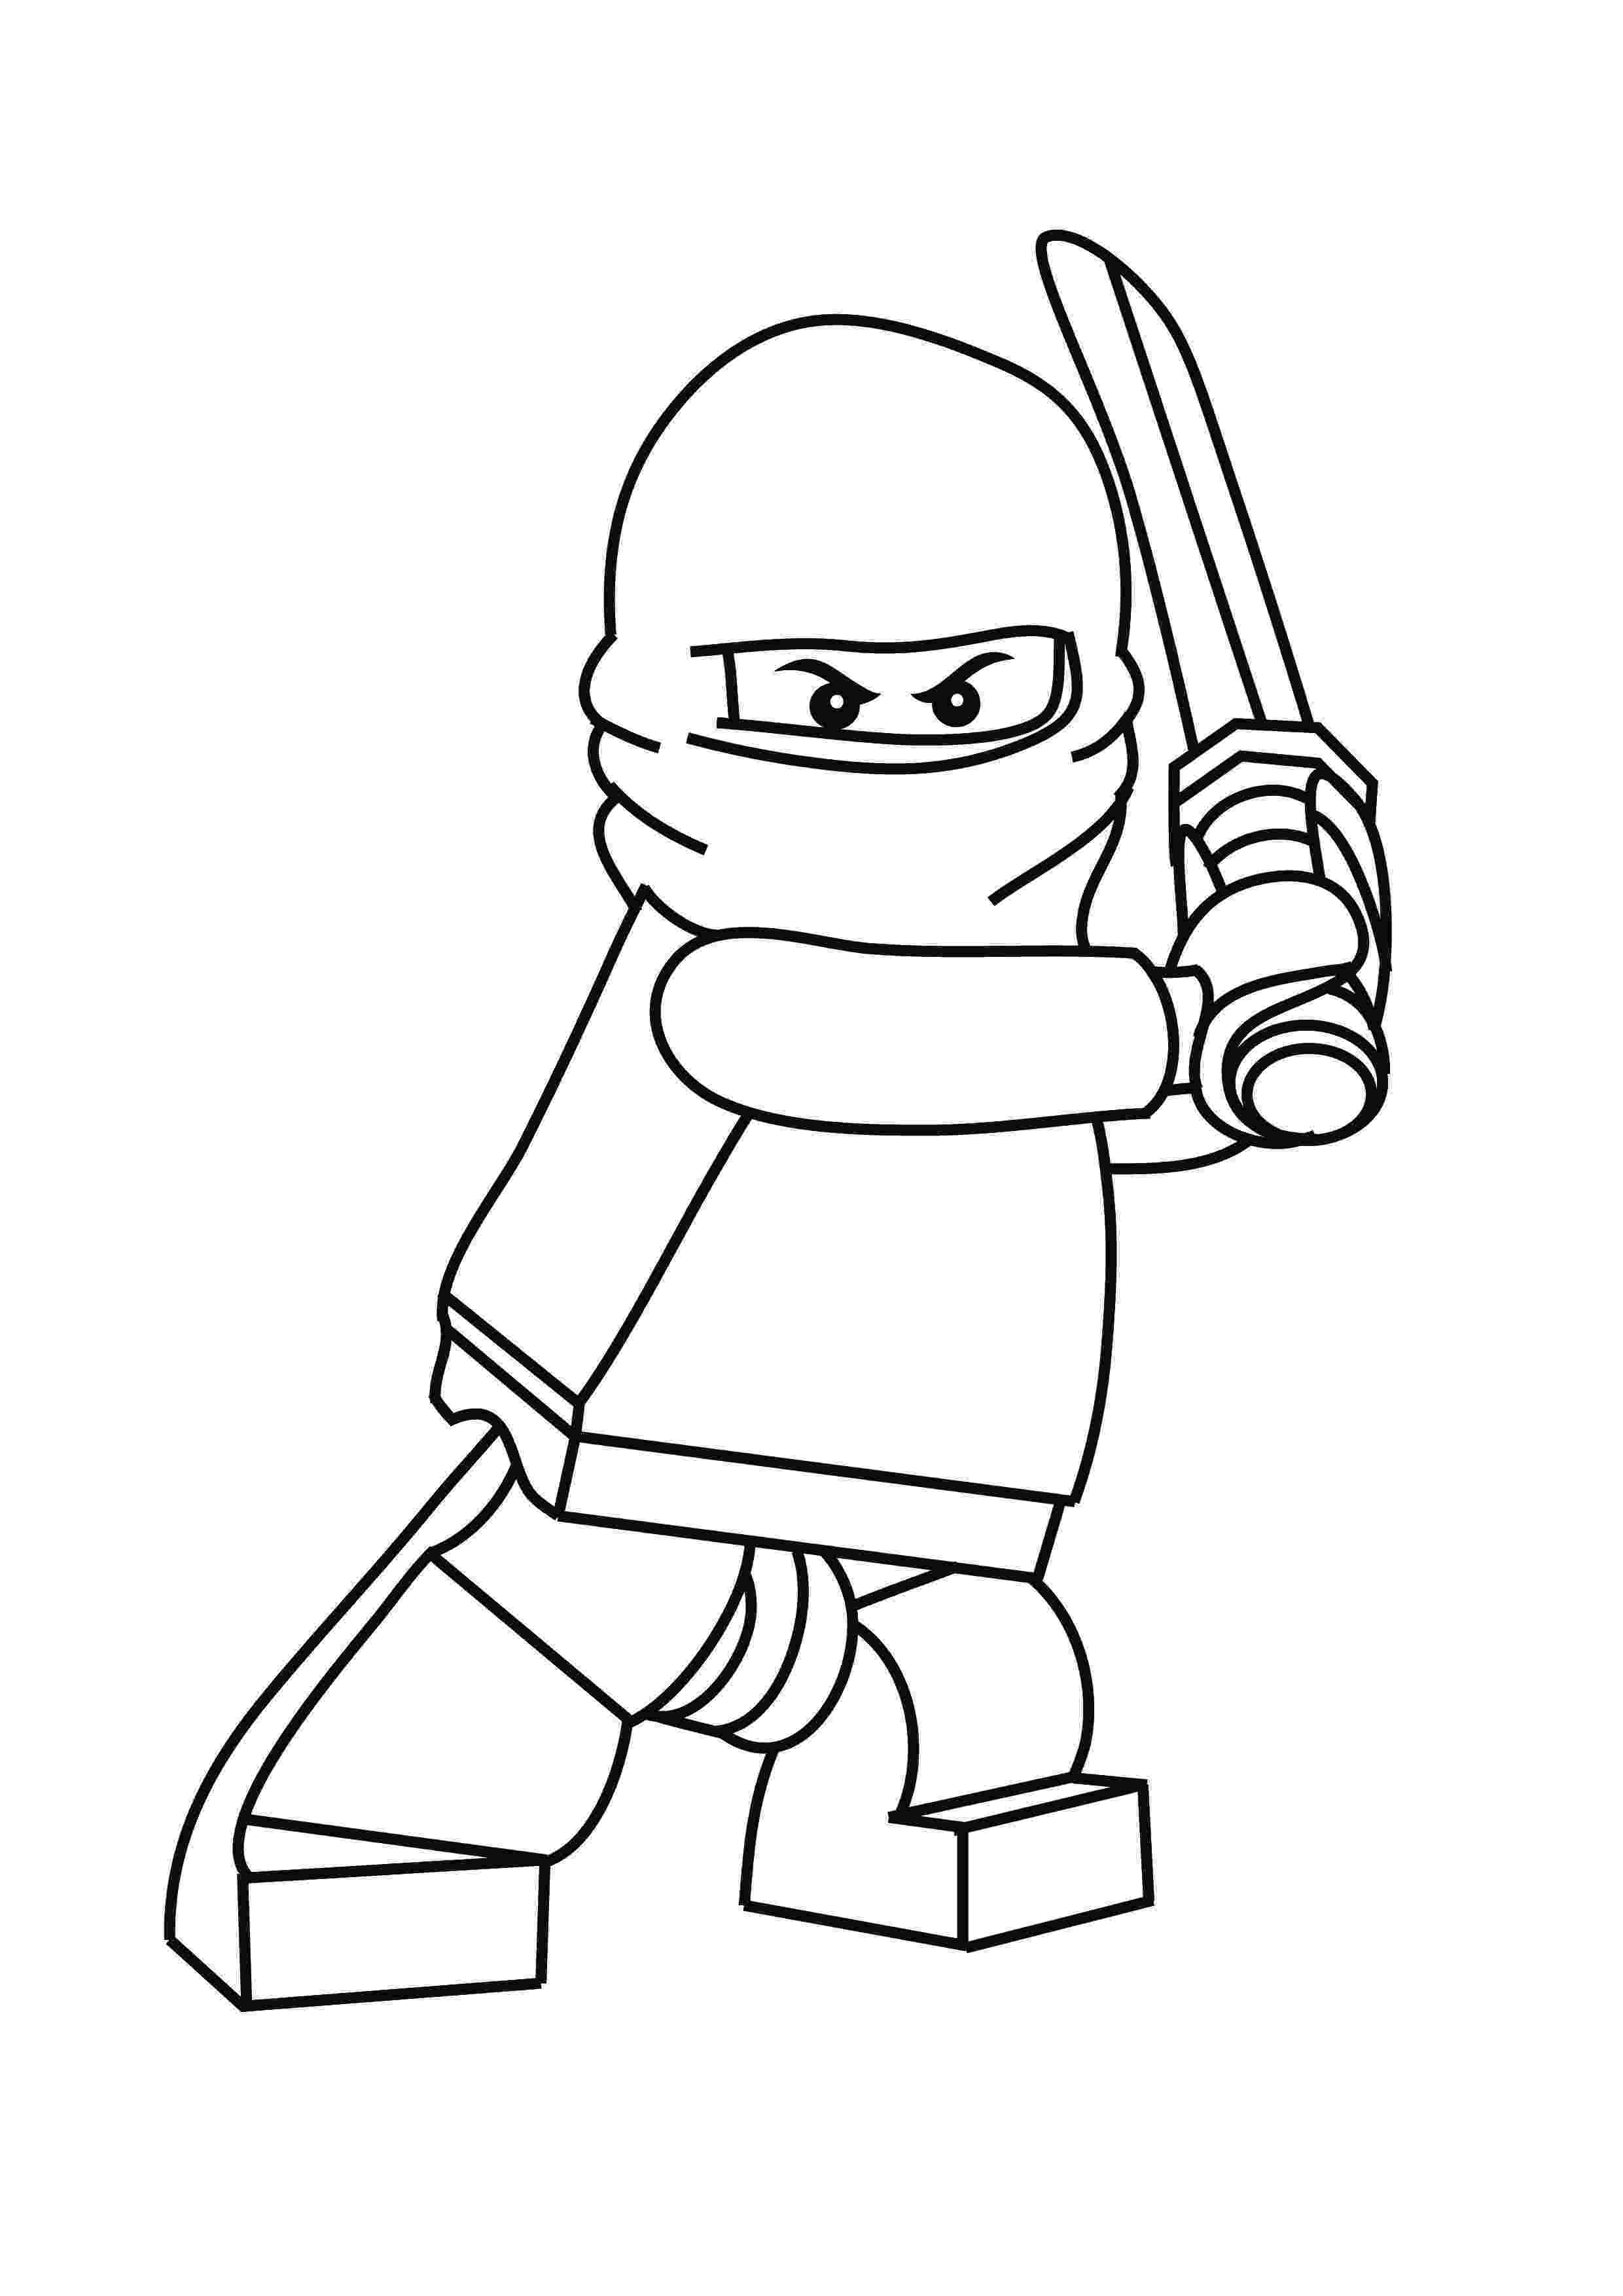 lego color sheets lego coloring pages with characters chima ninjago city sheets color lego